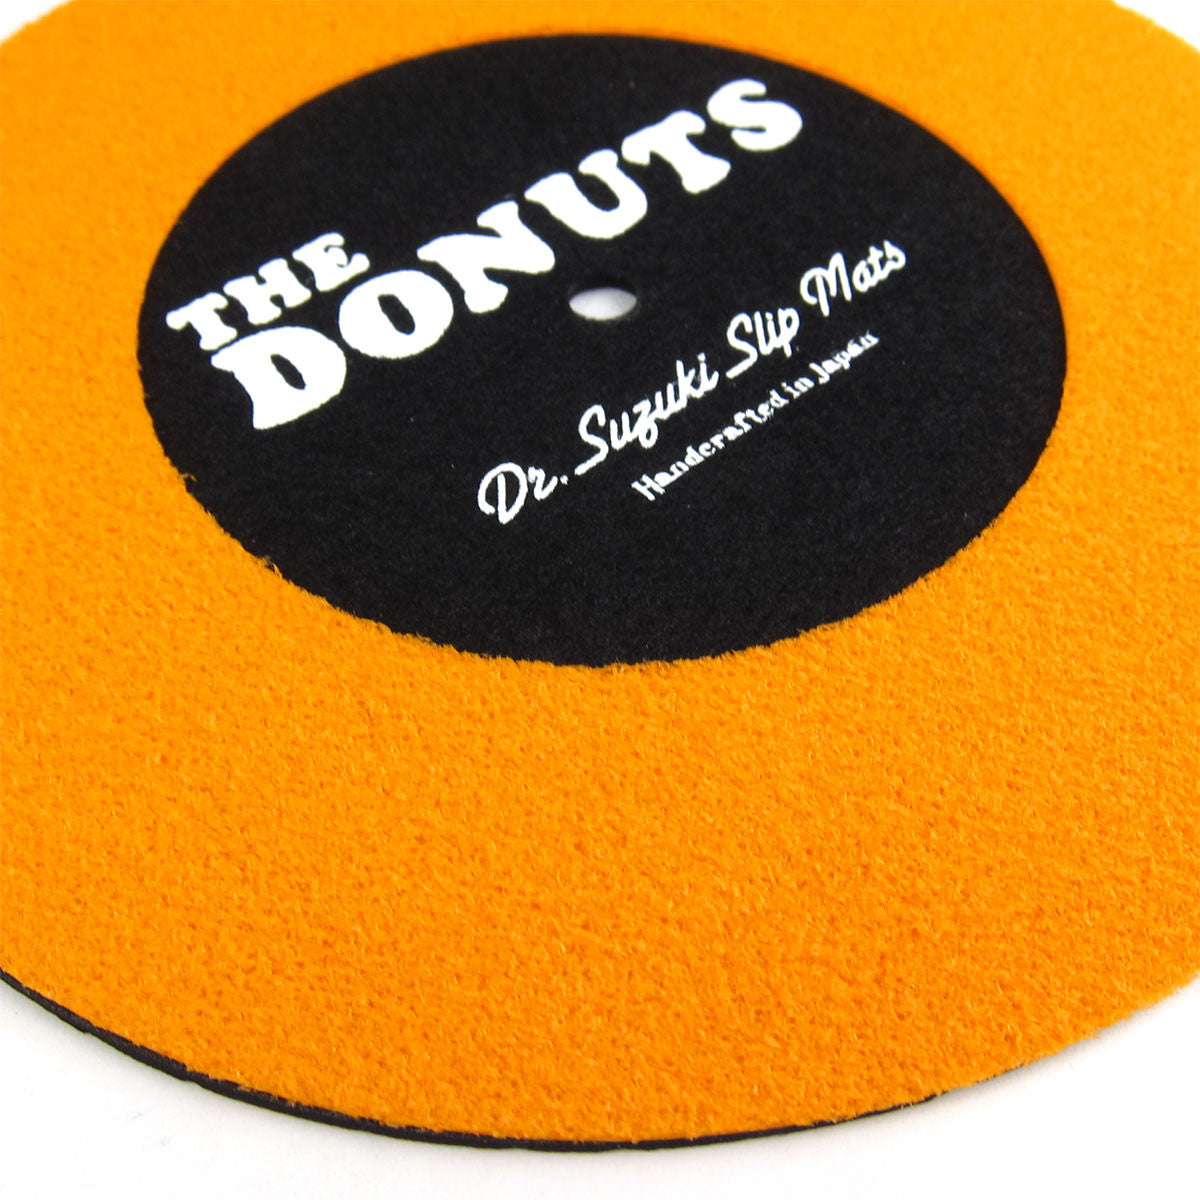 "Stokyo: Dr. Suzuki The Donuts 7"" Slipmats - Orange / Black (Limited Edition)"